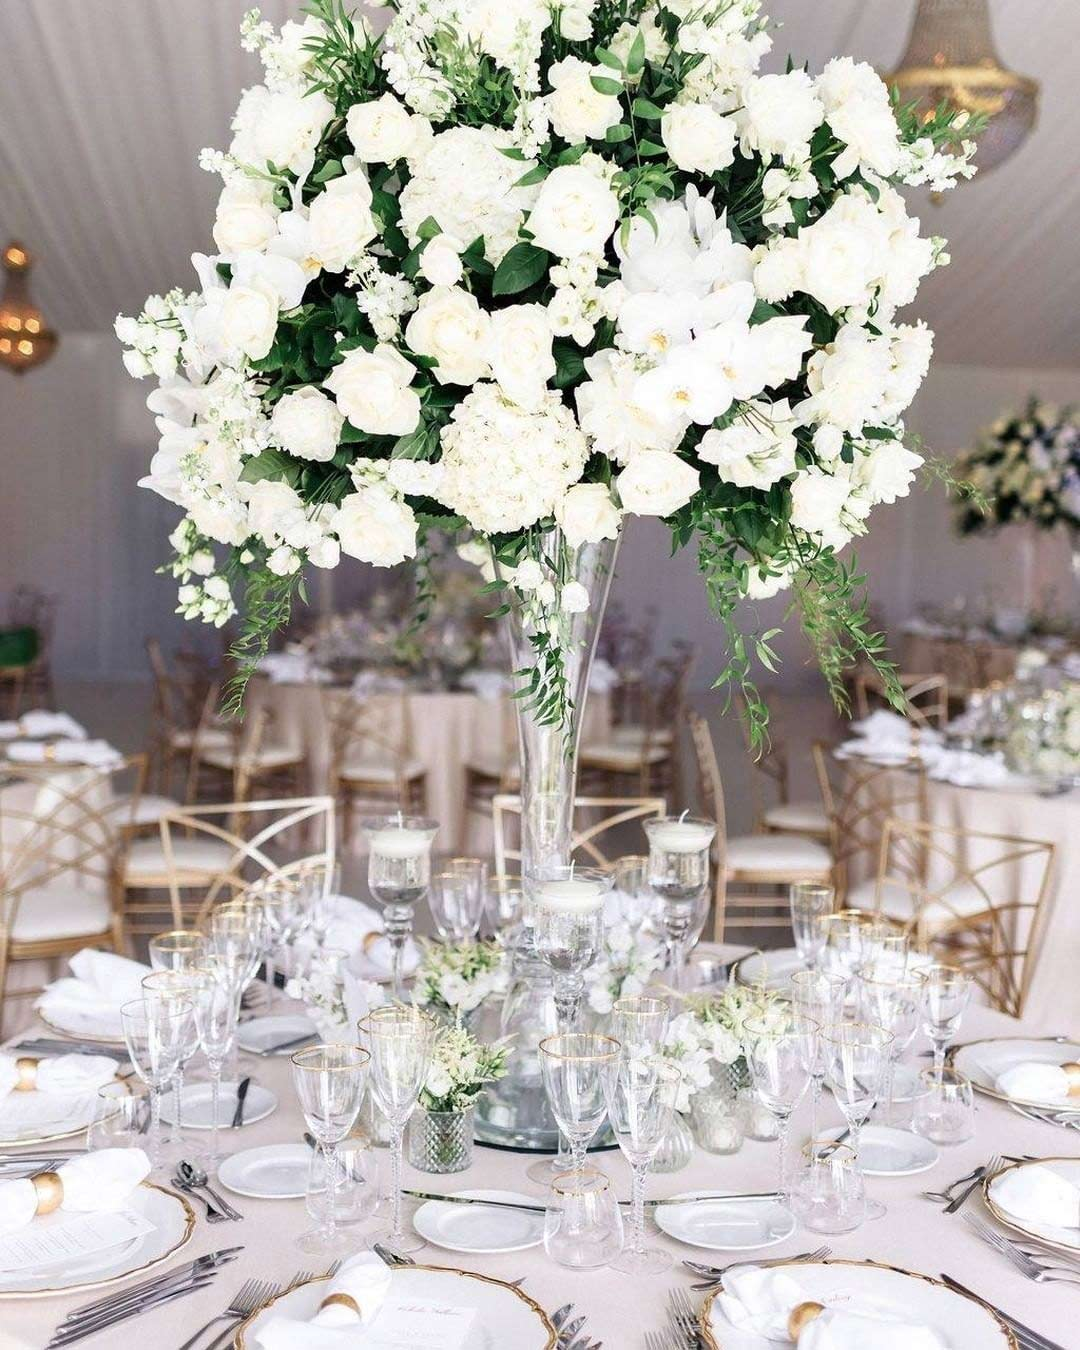 wedding colors white forest green gold flowers centerpiece